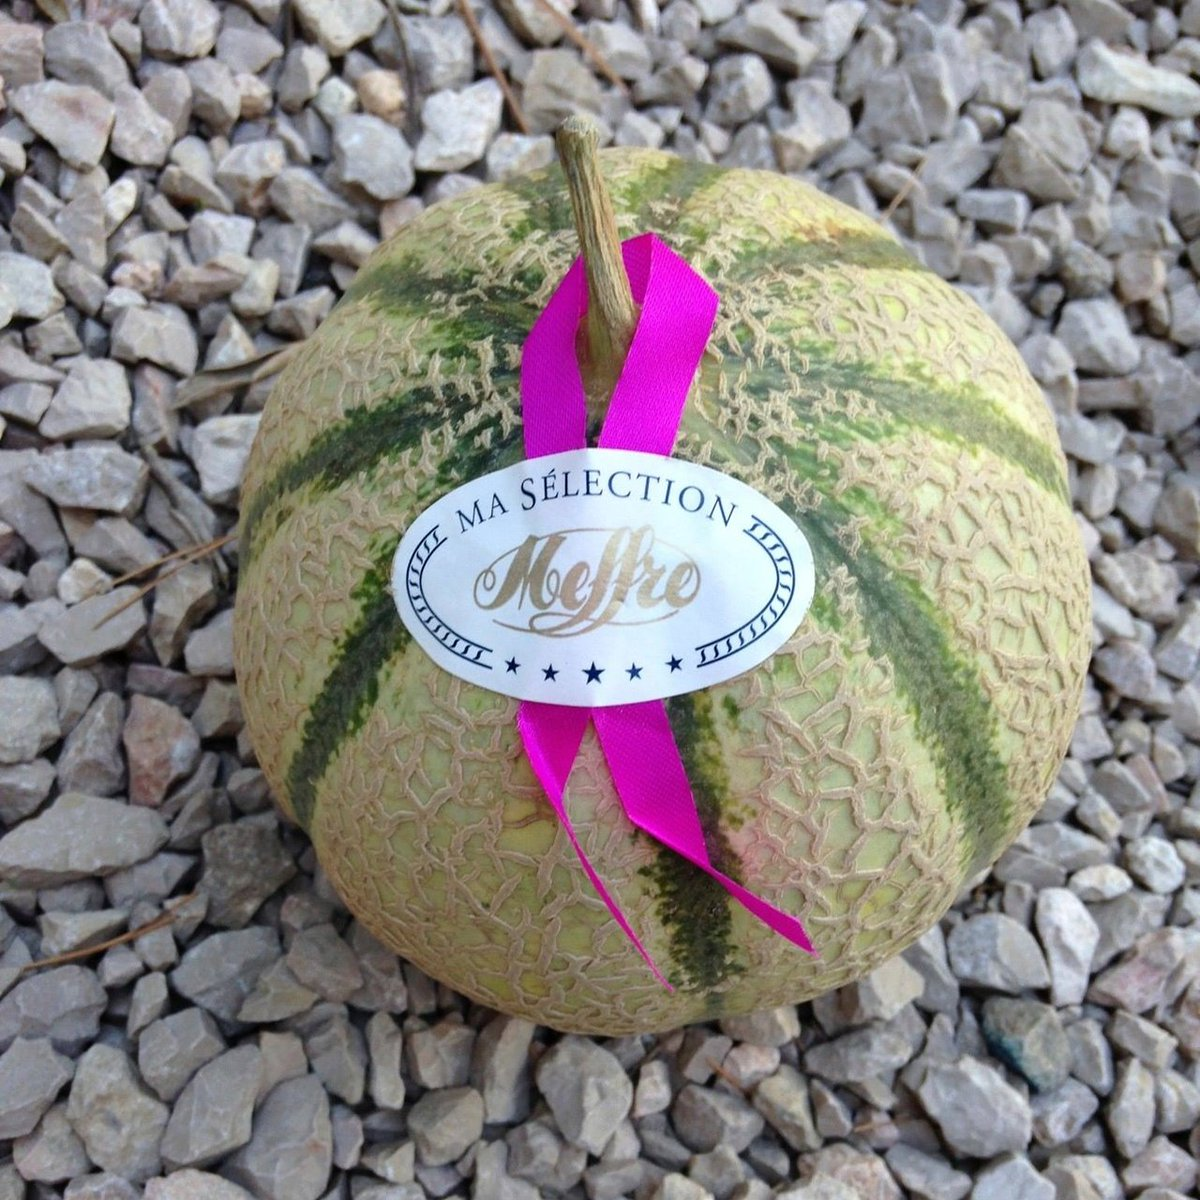 Healthy Living On Twitter Quality Cantaloupe From France Whenever I M On Vacation In Nice France My Daily Grocery Basket Has This Cantaloupe Wellnessya Cantaloupe Melon Fruit Organic Instagood Https T Co Rnpimtreii Cantaloupe melons have a fairly soft exterior skin that can be easily punctured and penetrated. twitter